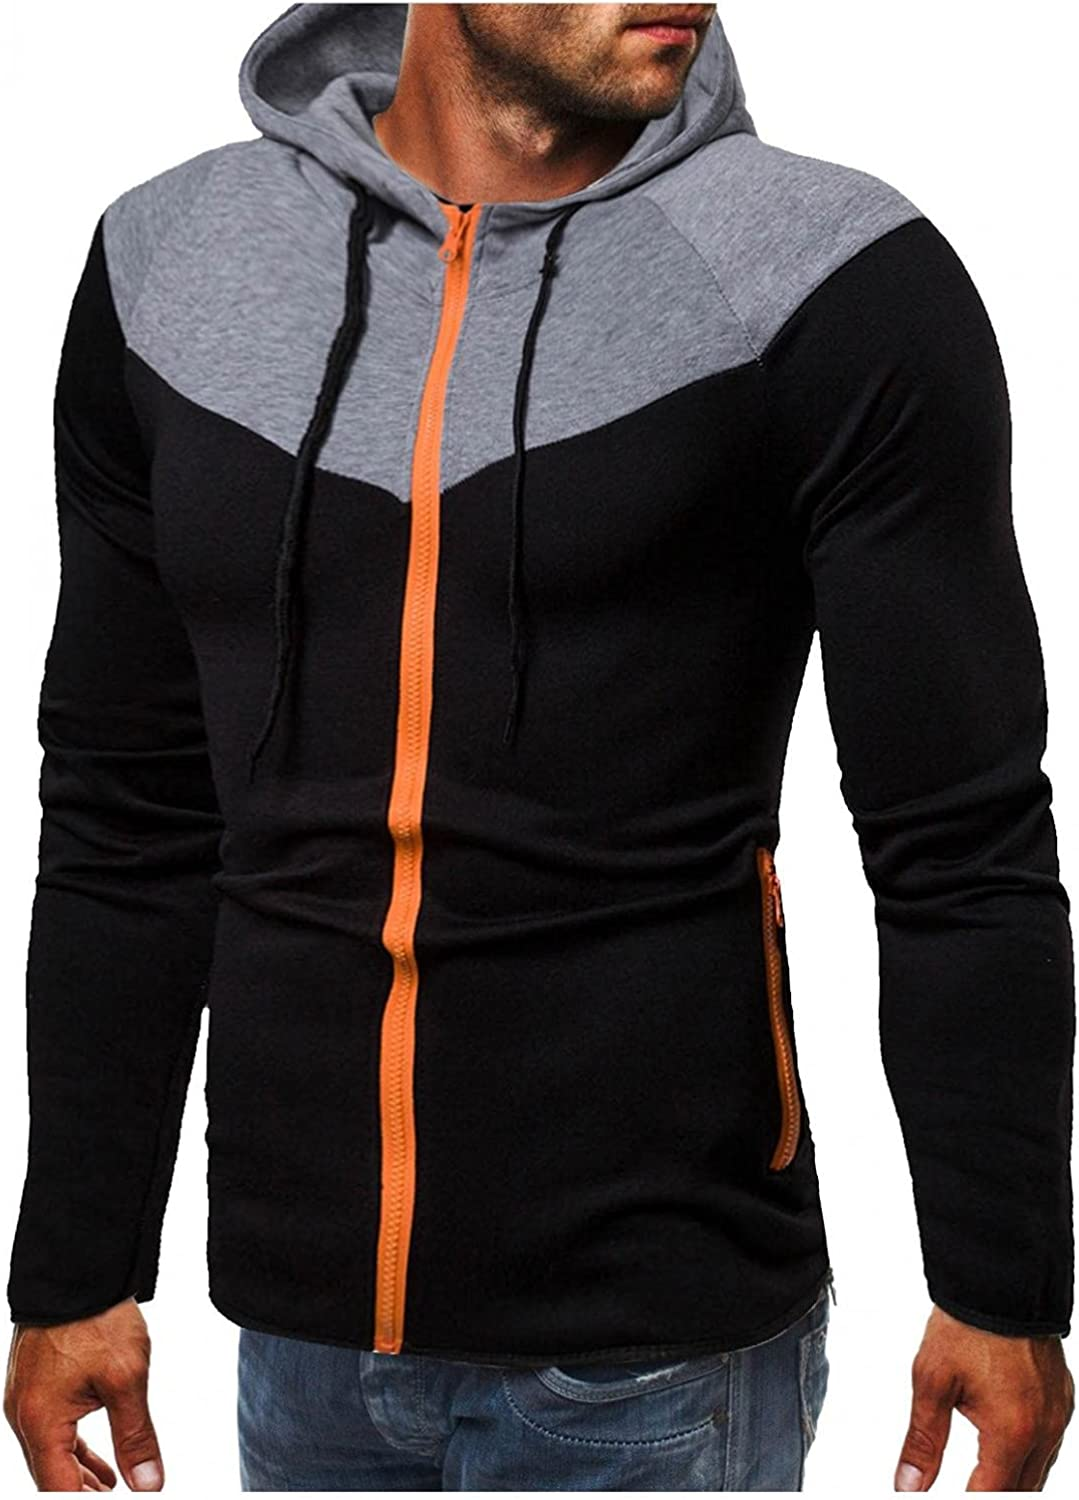 Qsctys Pullover Hoodies Mens Sweatshirts Zip Up - Casual Patchwork Fall Winter Warm Hooded Workout Sport Jackets Lightweight